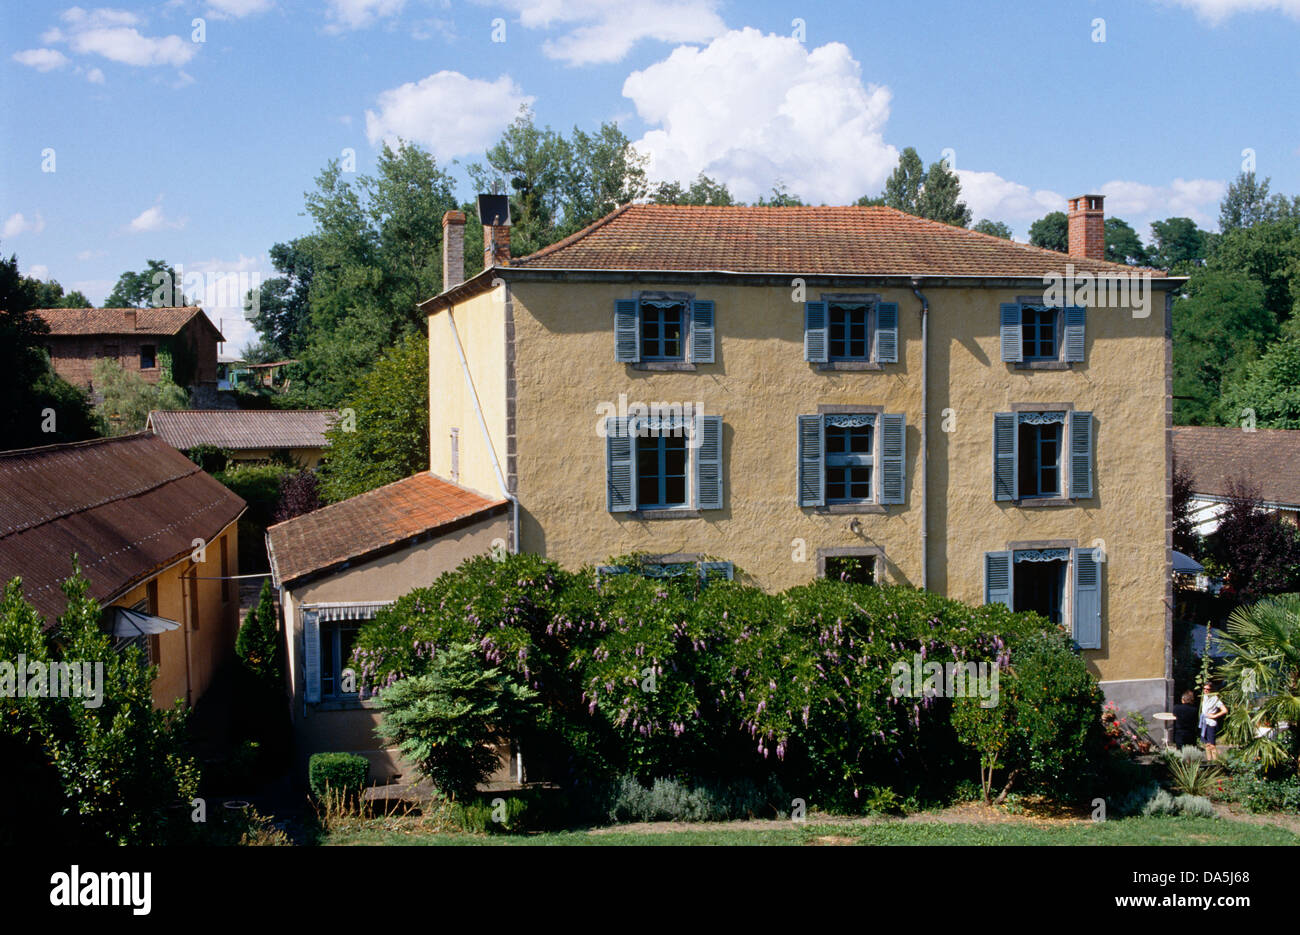 French Country House Stock Photos  French Country House Stock - French country house